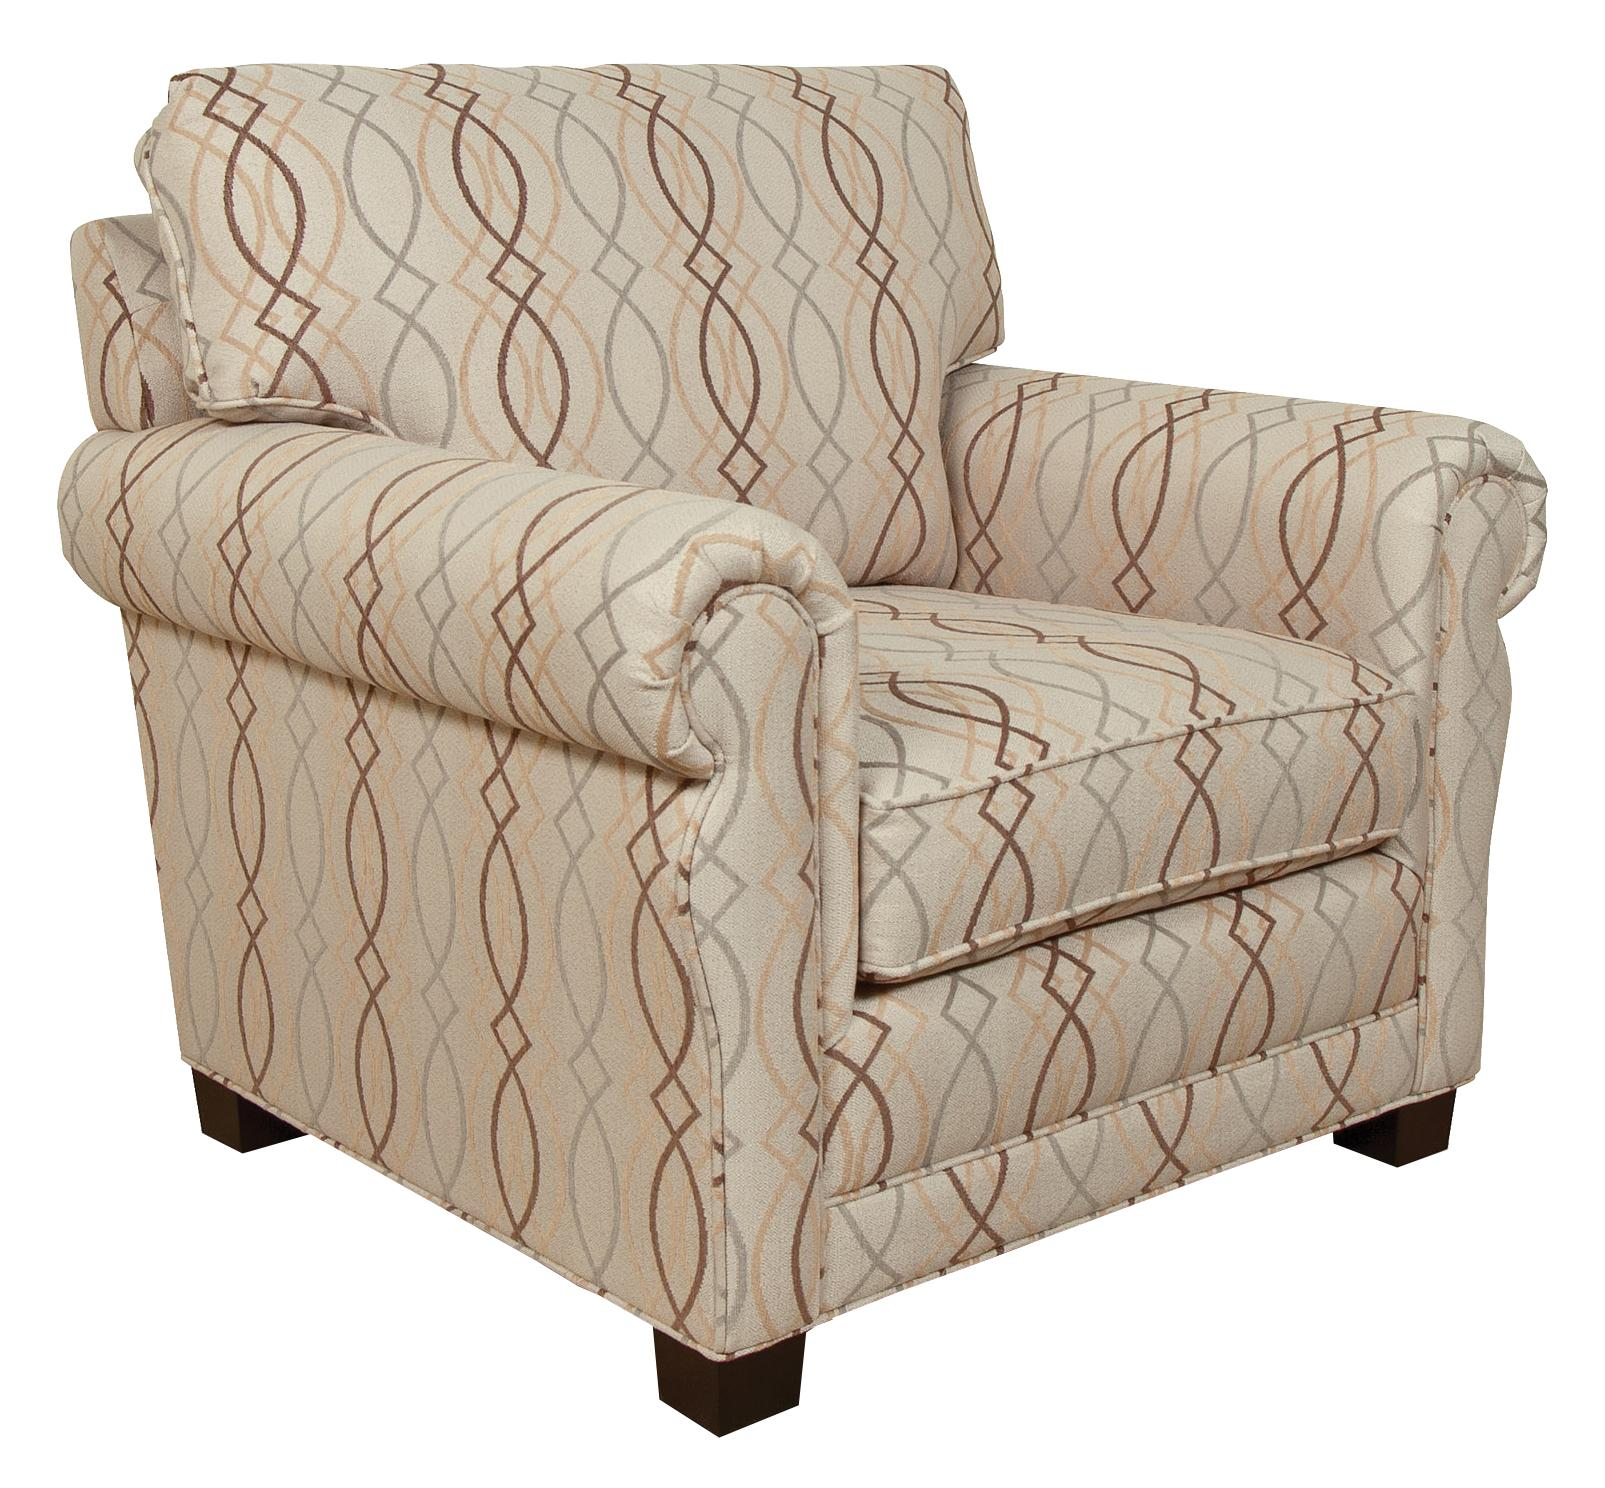 England green living room arm chair virginia furniture - Upholstered benches for living room ...